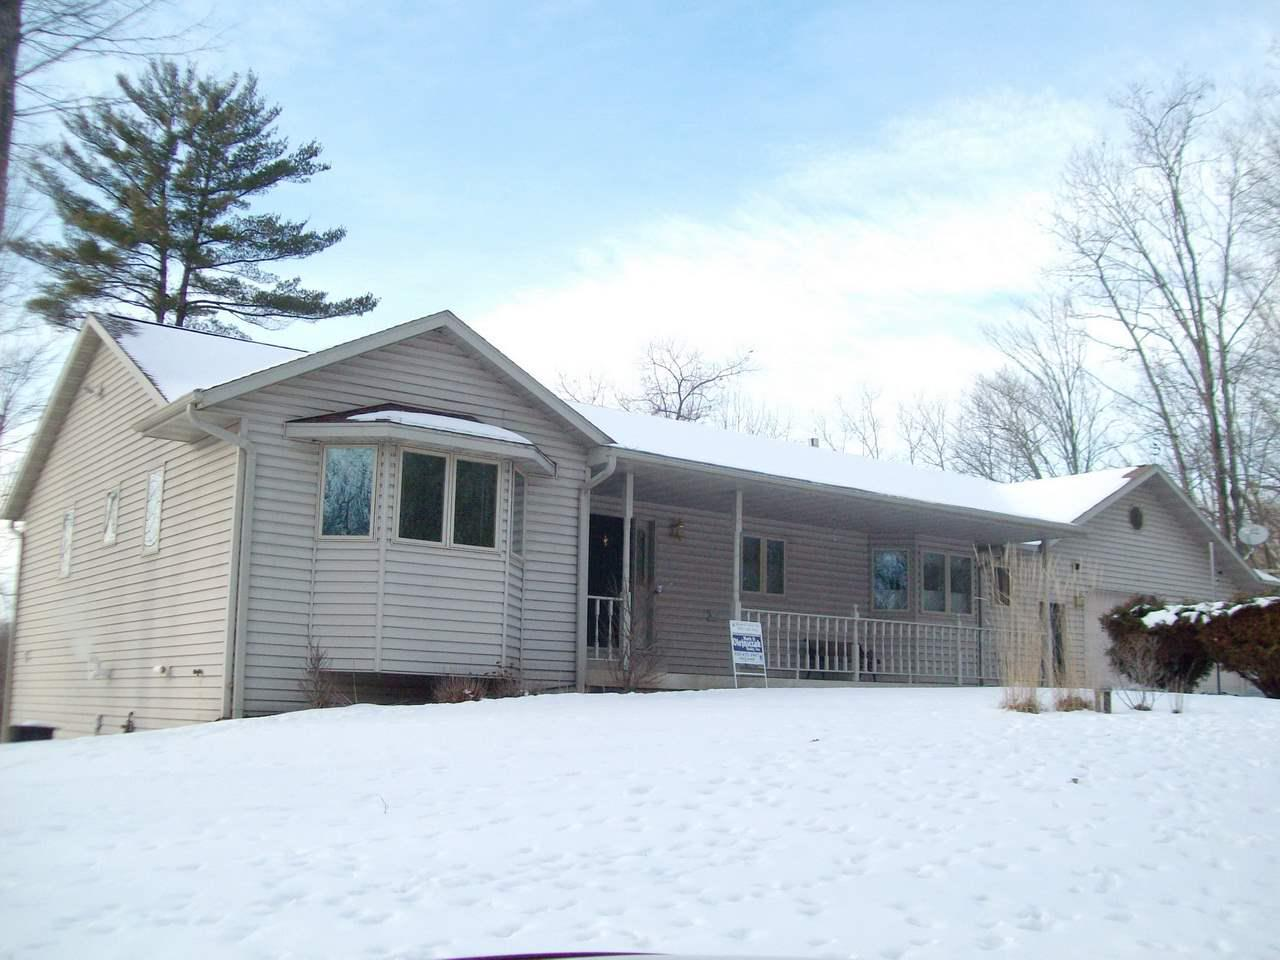 Custom-built walk-out ranch on 1.61 wooded acres. Double lot w/220 ft frontage on Unnamed Lake. Located at end of private rd. $150 annual fee covers rd maintenance, plowing & stocking lake w/fish. Fam Rm & bath on LL w/patio doors. Needs flooring. W/B free-standing stove-Fam Rm. Gasfree-standing FP-LR. Oak cabinets and 6-panel doors. Kit appliances, washer, dryer incl. Lake approx 48 ft deep.